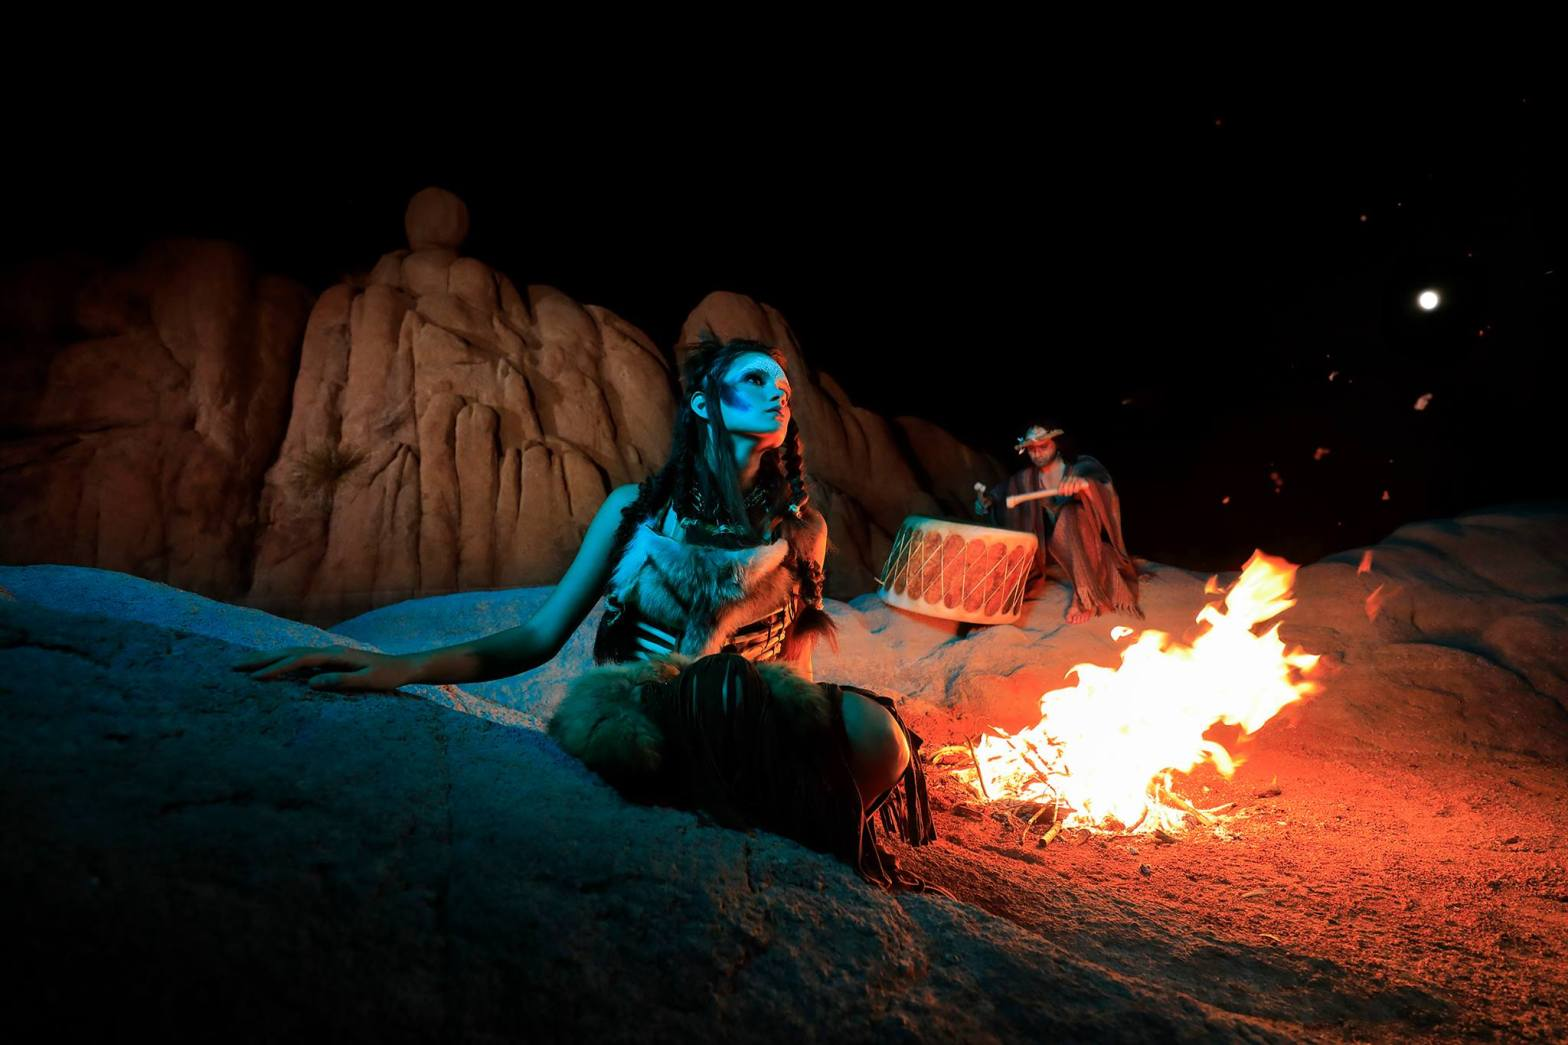 Clan of the Cave Bears model Samantha White poses in the foreground, Stevie Thunder on the drums behind her and the bonfire.